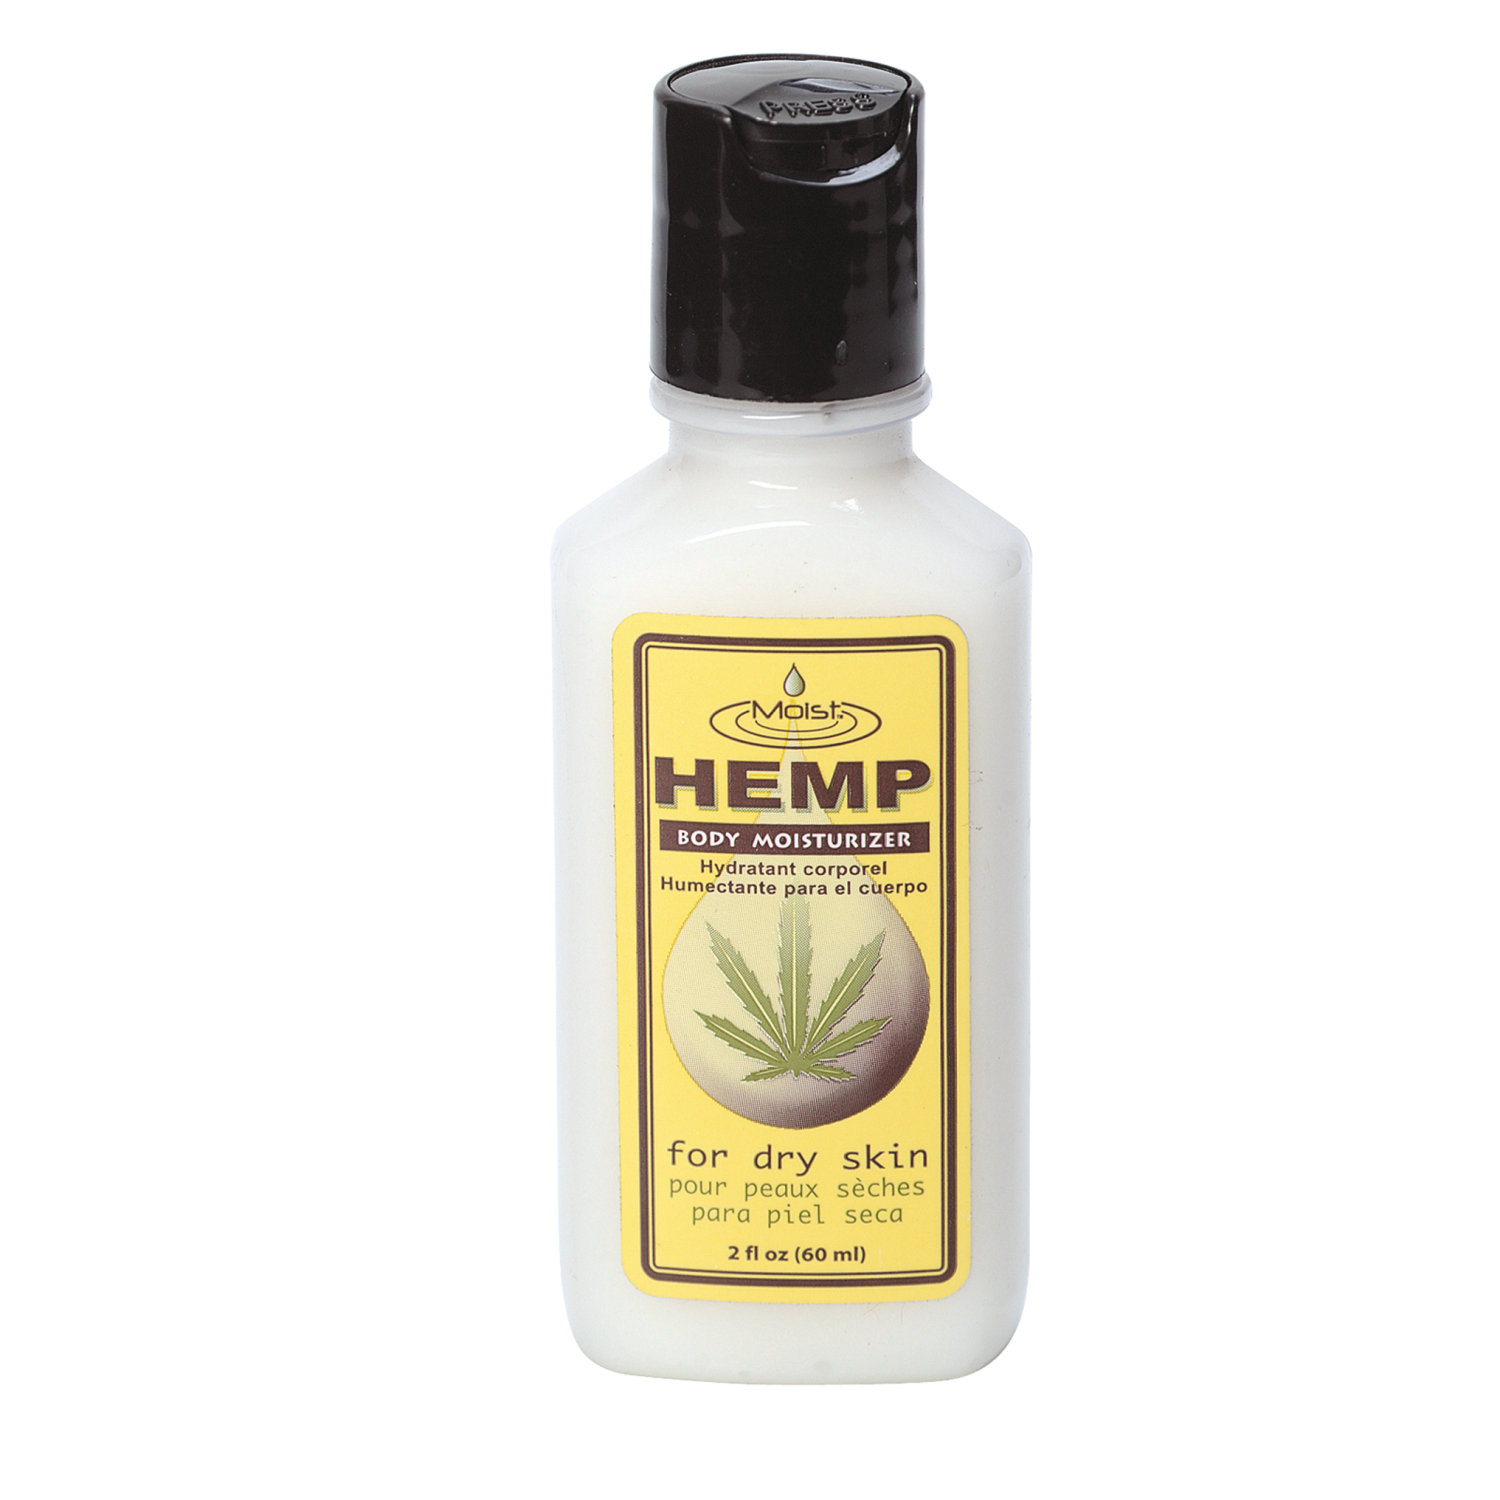 Moist hemp coupons